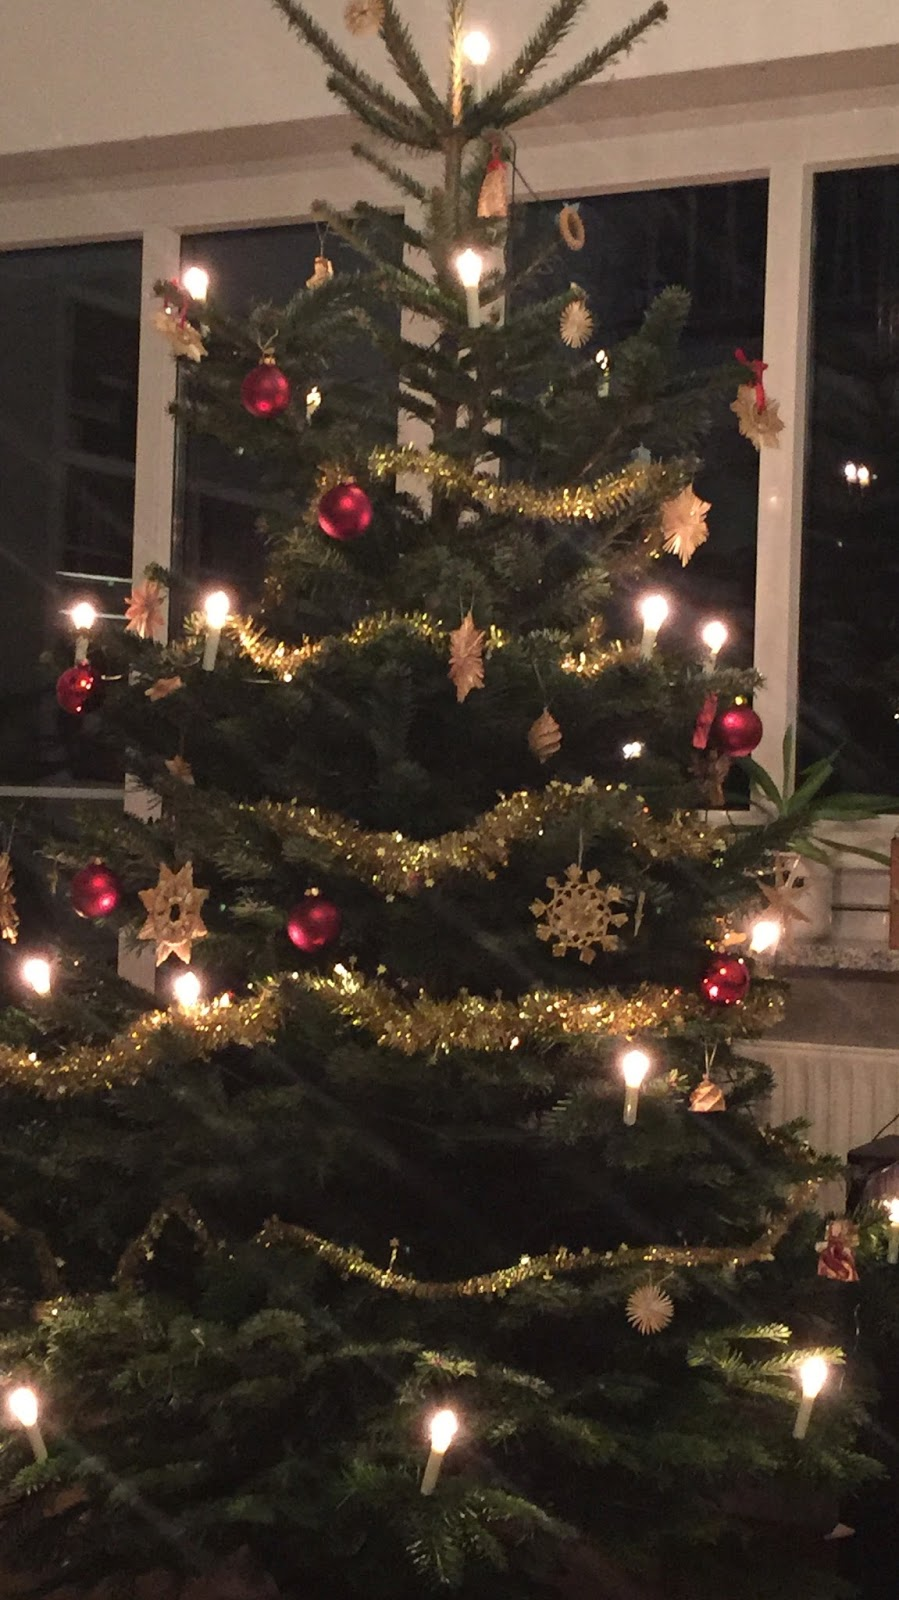 Image showing a German Christmas tree with gold and red decorations